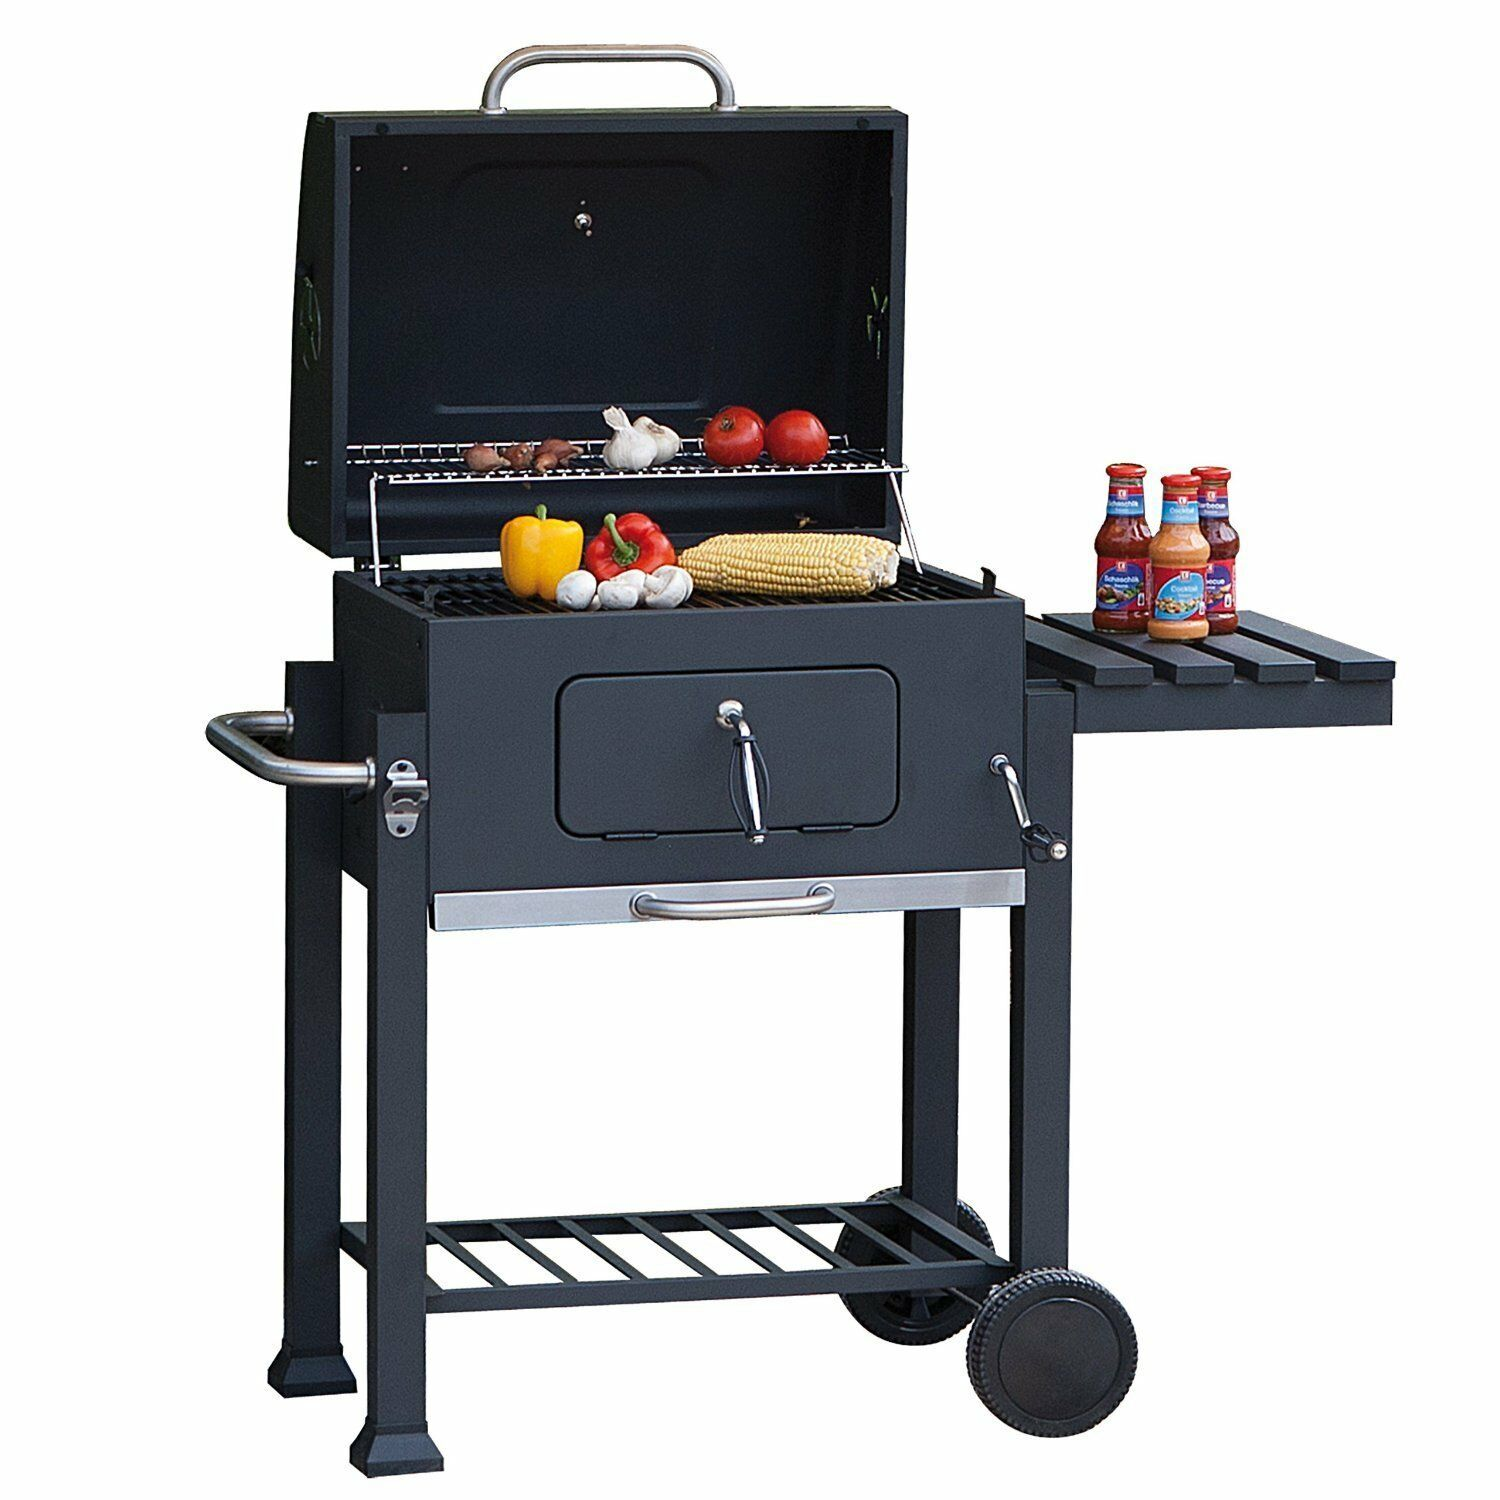 tepro grillwagen toronto holzkohlegrill smoker bbq r ucherofen thermometer stand picclick fr. Black Bedroom Furniture Sets. Home Design Ideas